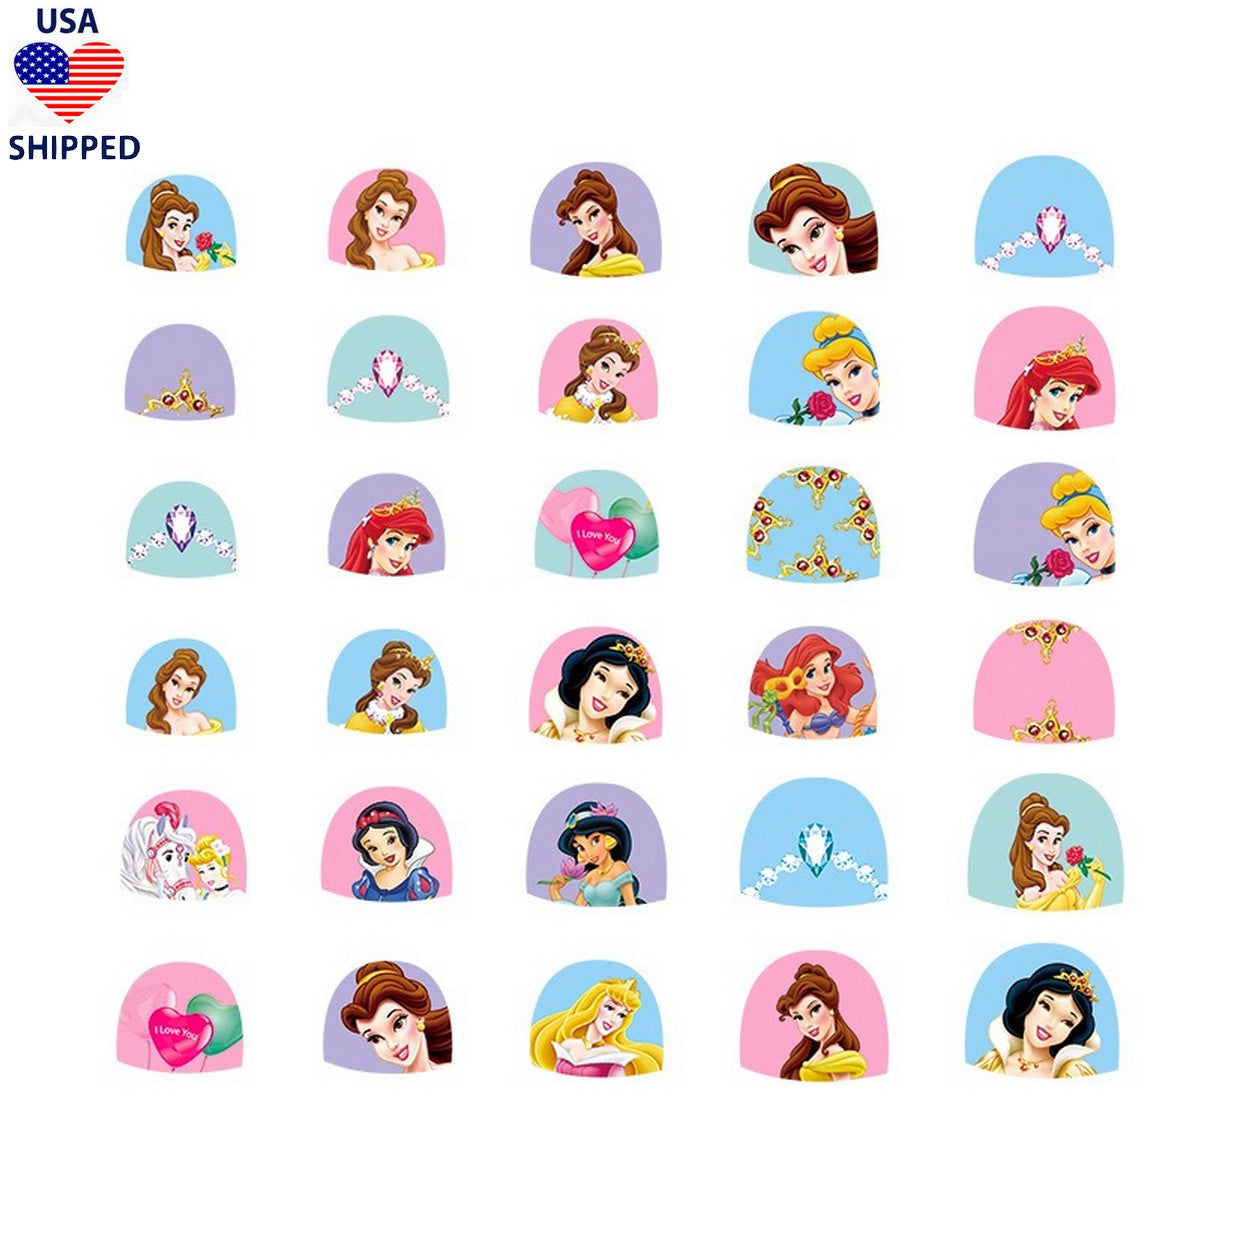 (USA) Kids Princesses #2 Nail Stickers